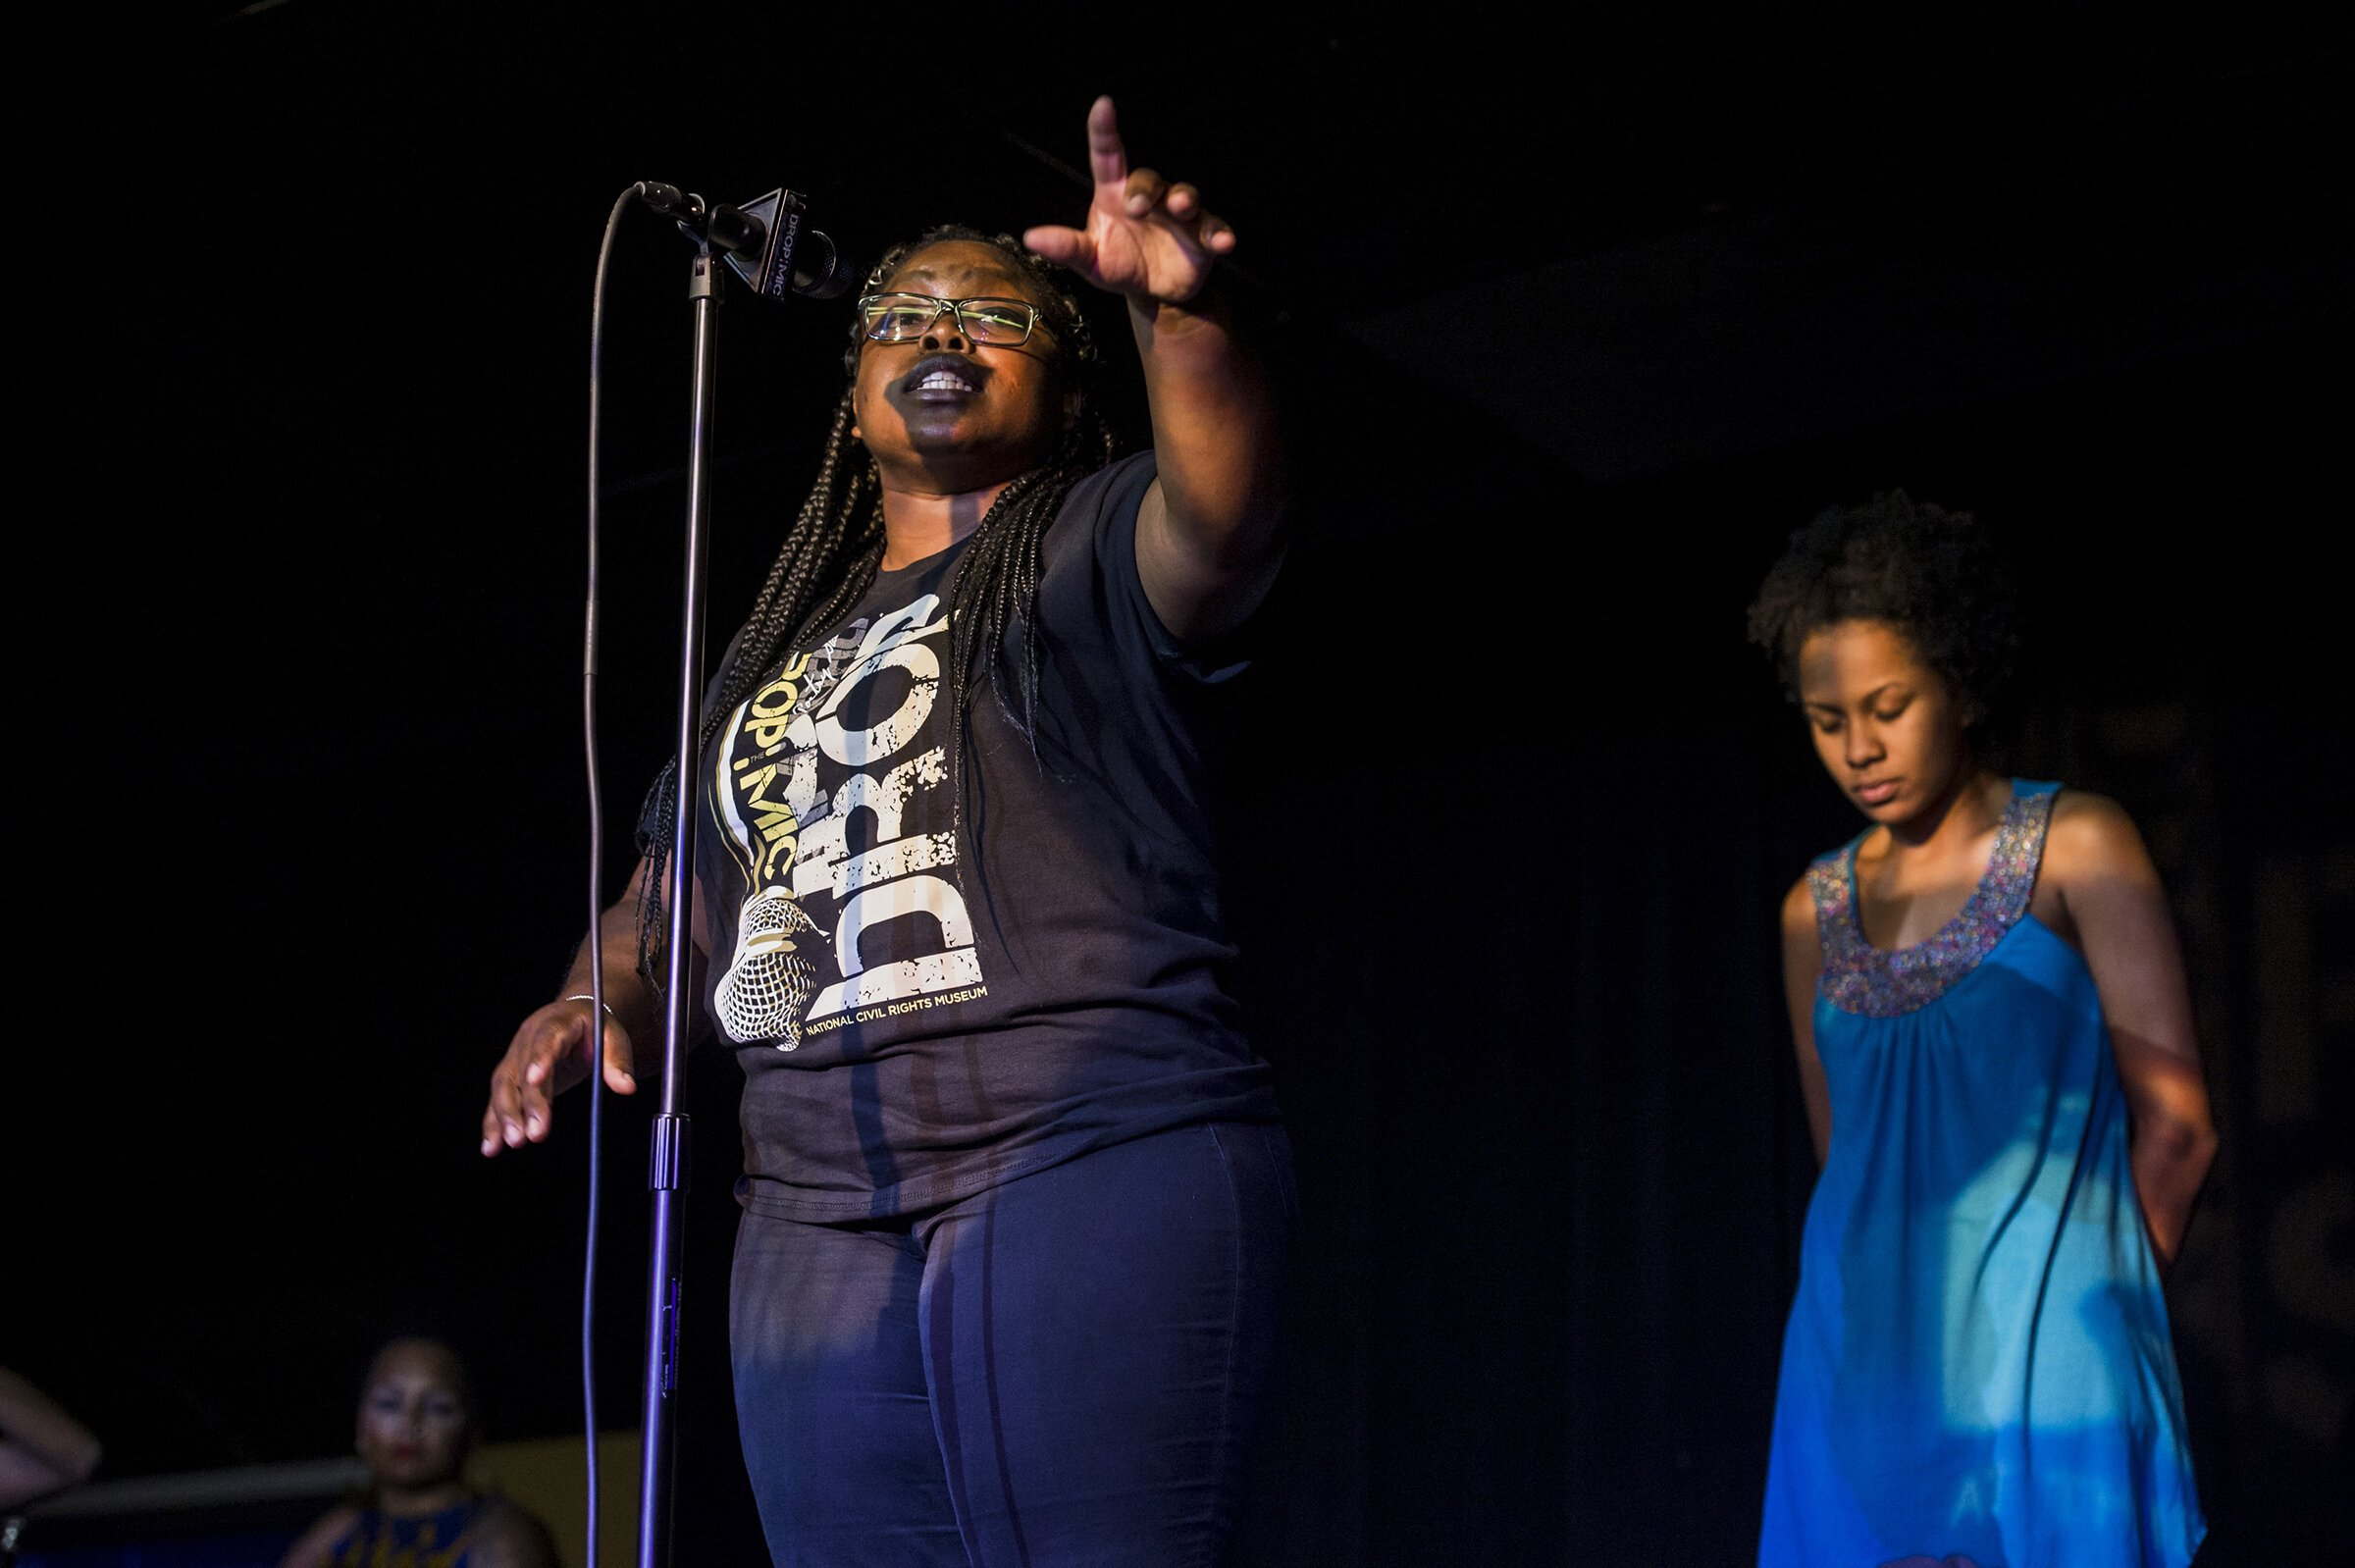 Carin Malone, who performs as Writeous Soul, is a Memphis slam poetry master working to revive the city's spoken word culture. She won the National Civil Rights Museum's Drop the Mic Poetry Slam in 2017 and now advises on the project. (Writeous Soul)